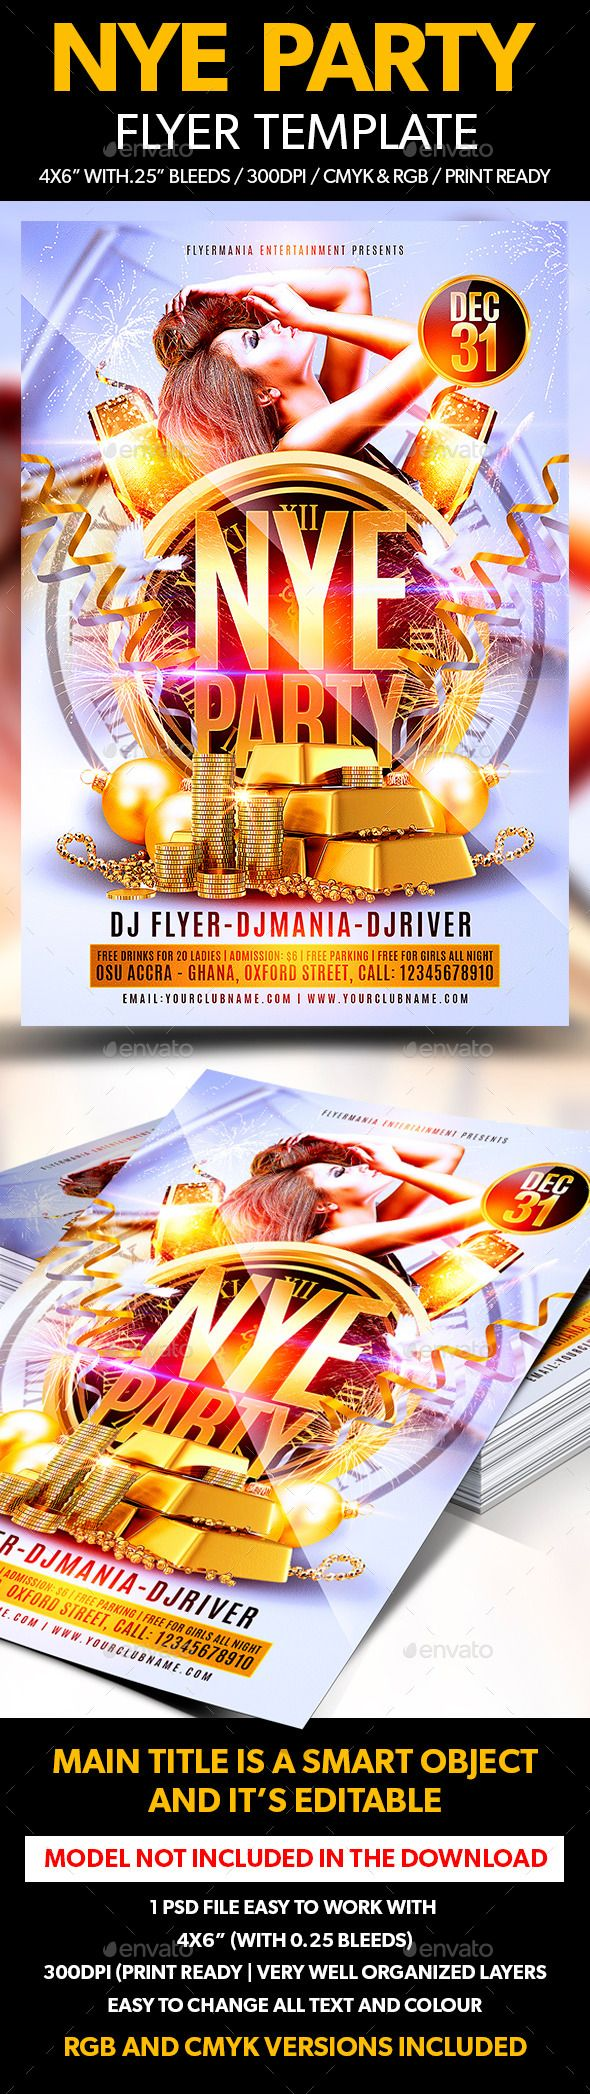 17 Best images about Flyers on Pinterest   Psd flyer templates ...